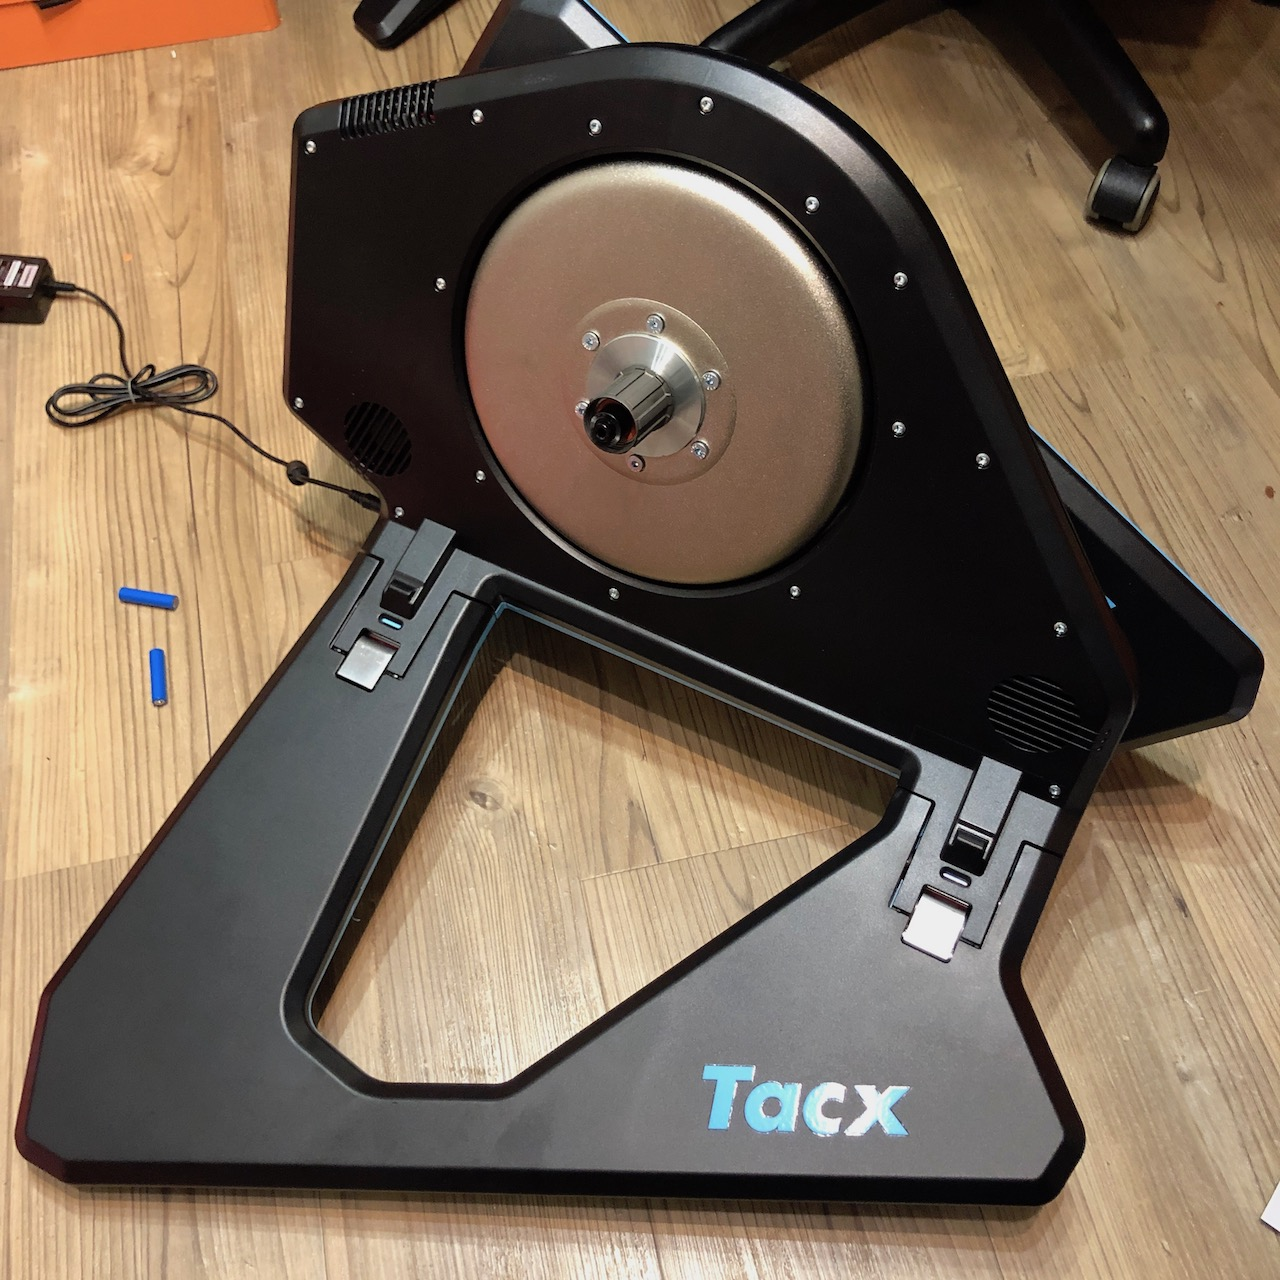 TitaniumGeek IMG 5712 Tacx NEO 2 Review | ZWIFT GEAR TEST Cycling Gear Reviews Smart Trainers Zwift  Zwift tacx neo 2 cycling   Image of IMG 5712